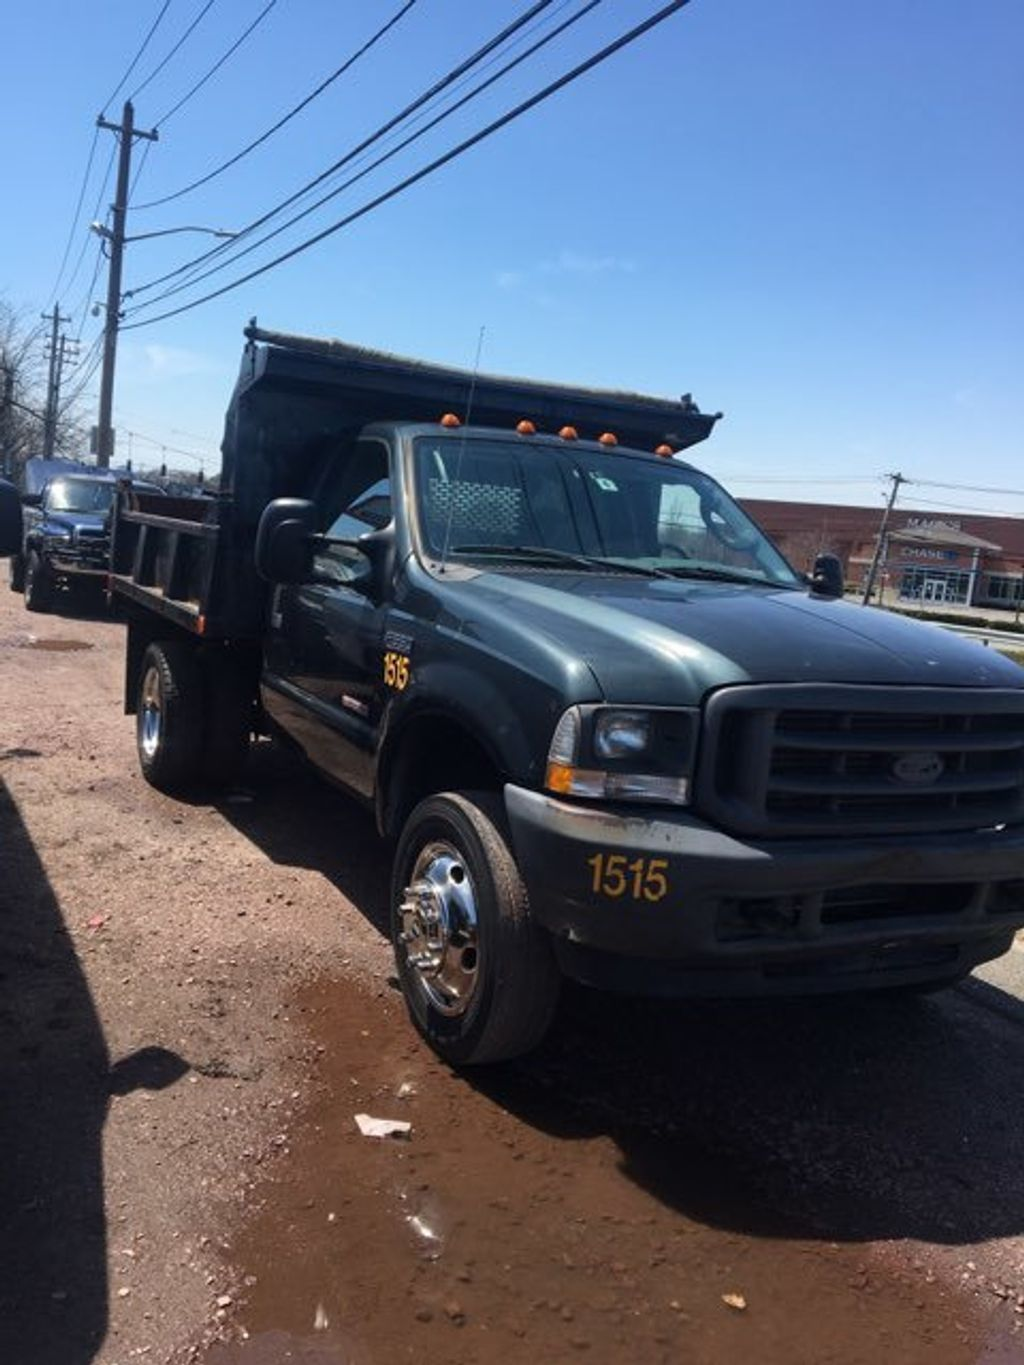 2004 Ford Super Duty F-550 9 FOOT MASON DUMP  with PTO F550 9 FOOT MASON DUMP 5 SPEED WITH PTO CONTROLLER - 14872380 - 3